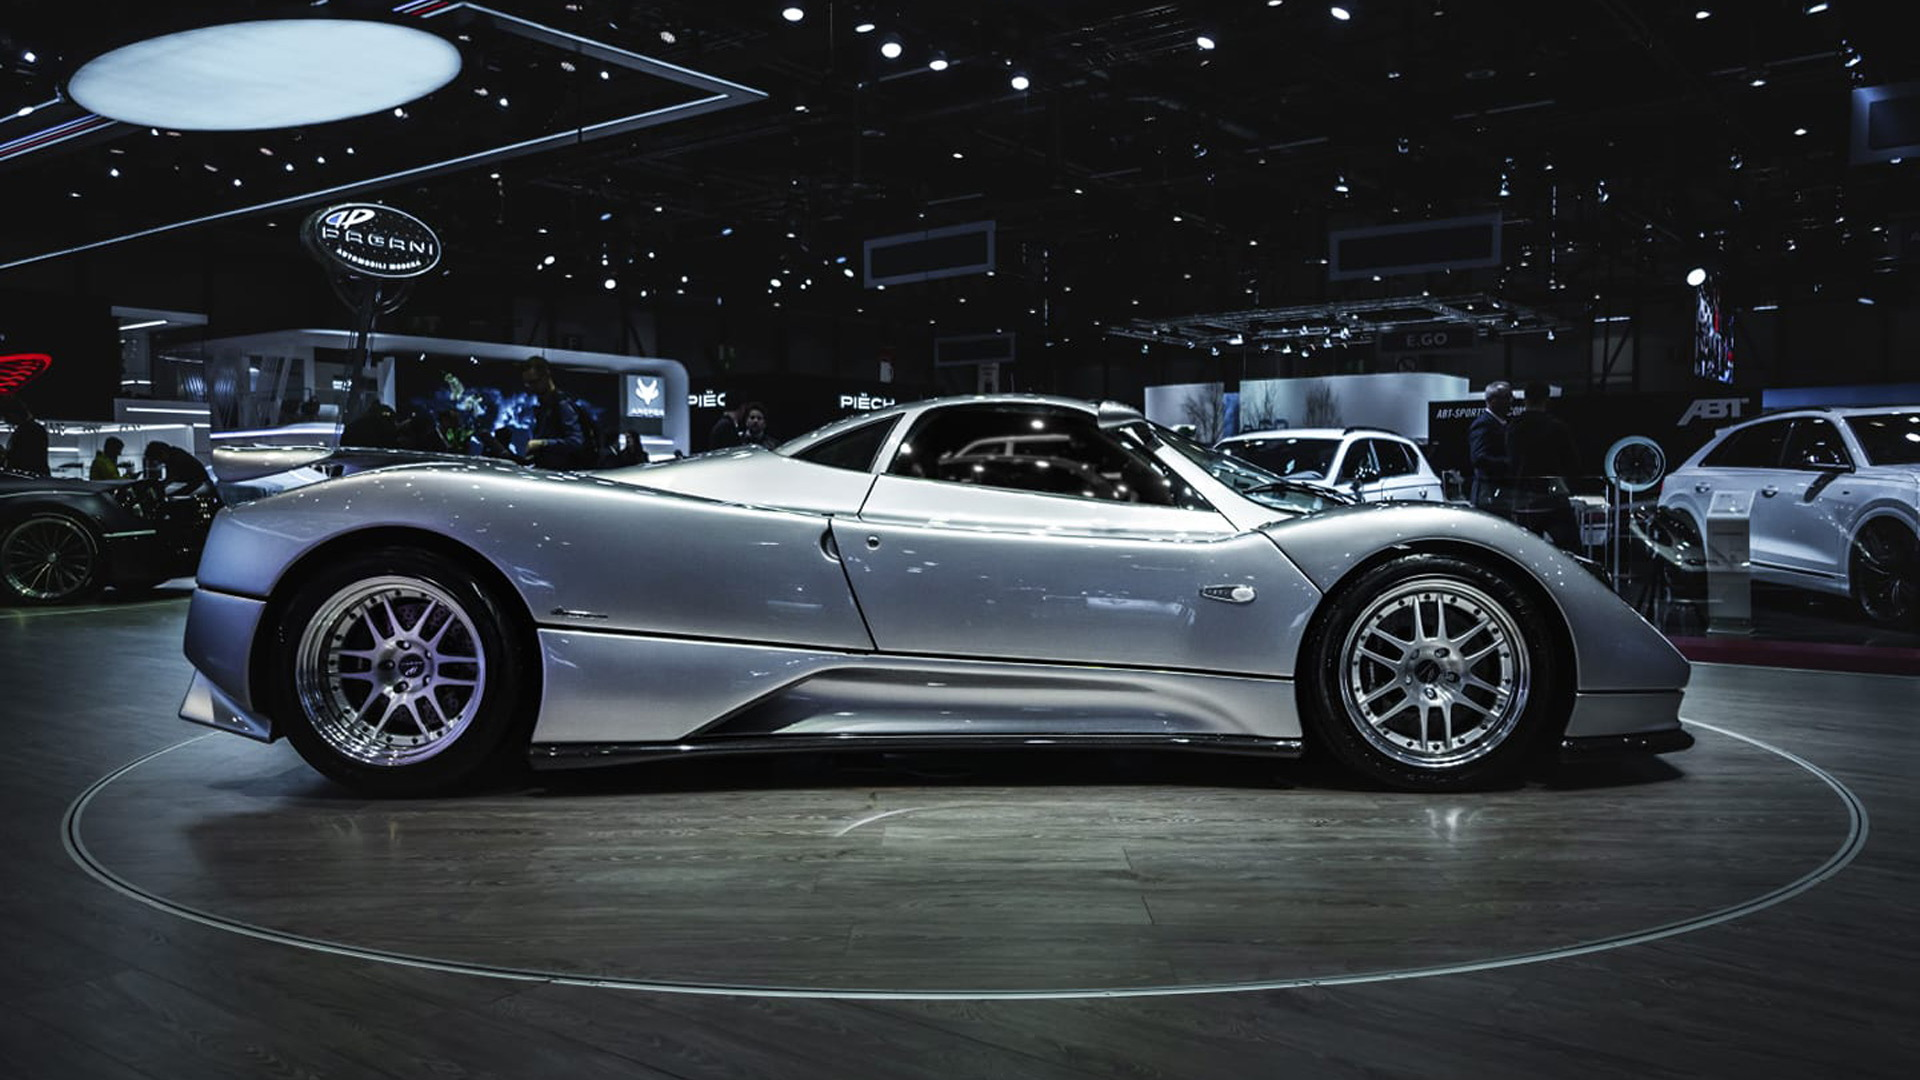 Pagani Zonda C12 with chassis number ending in 001